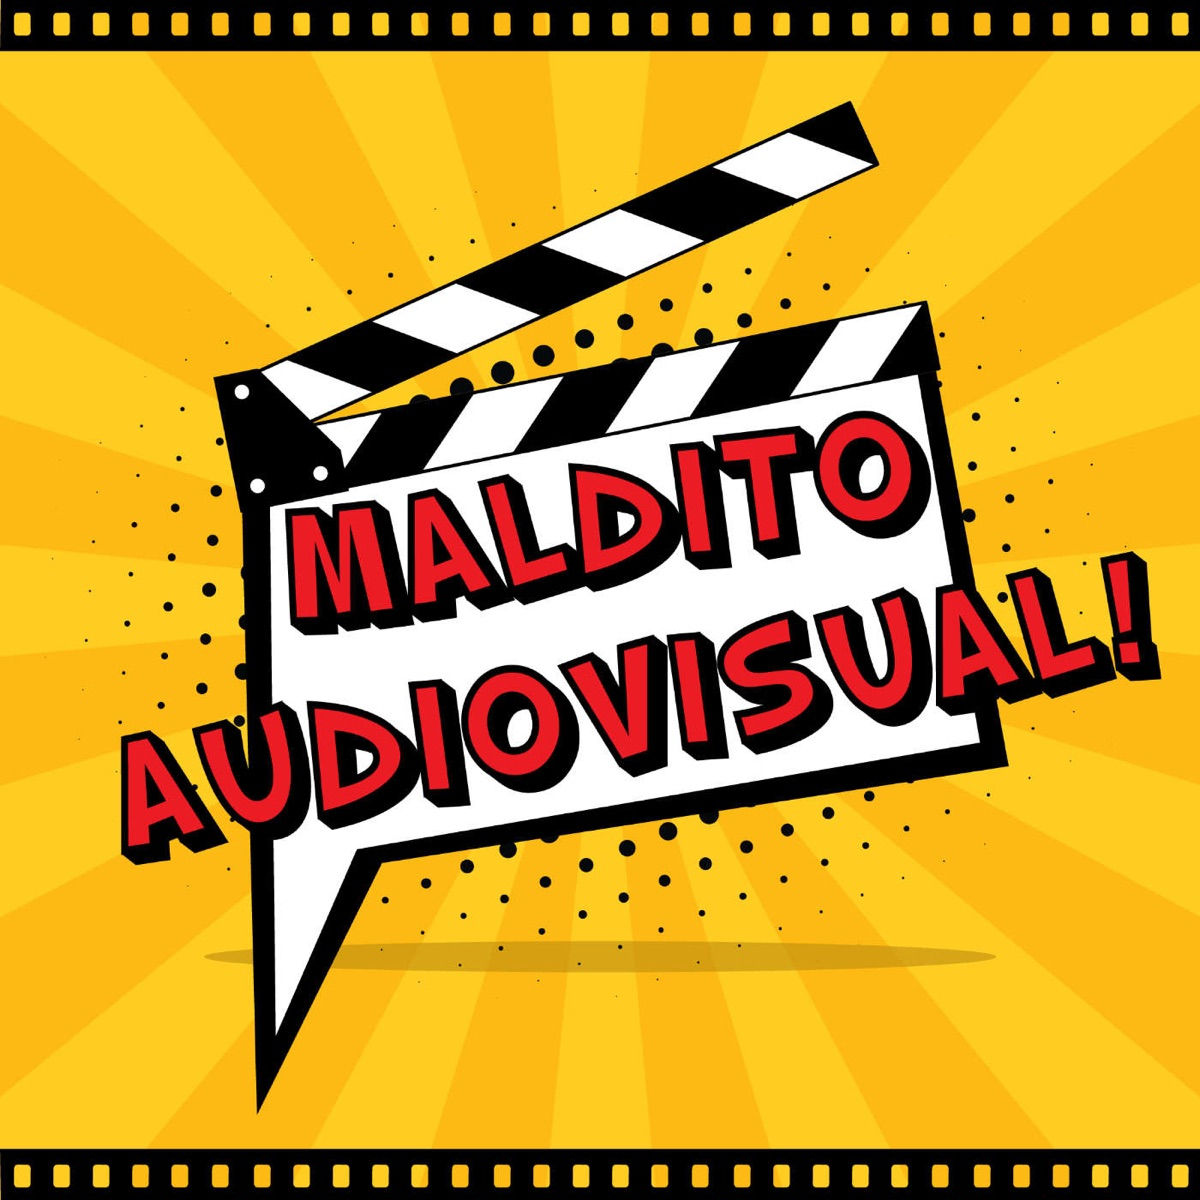 Maldito Audiovisual